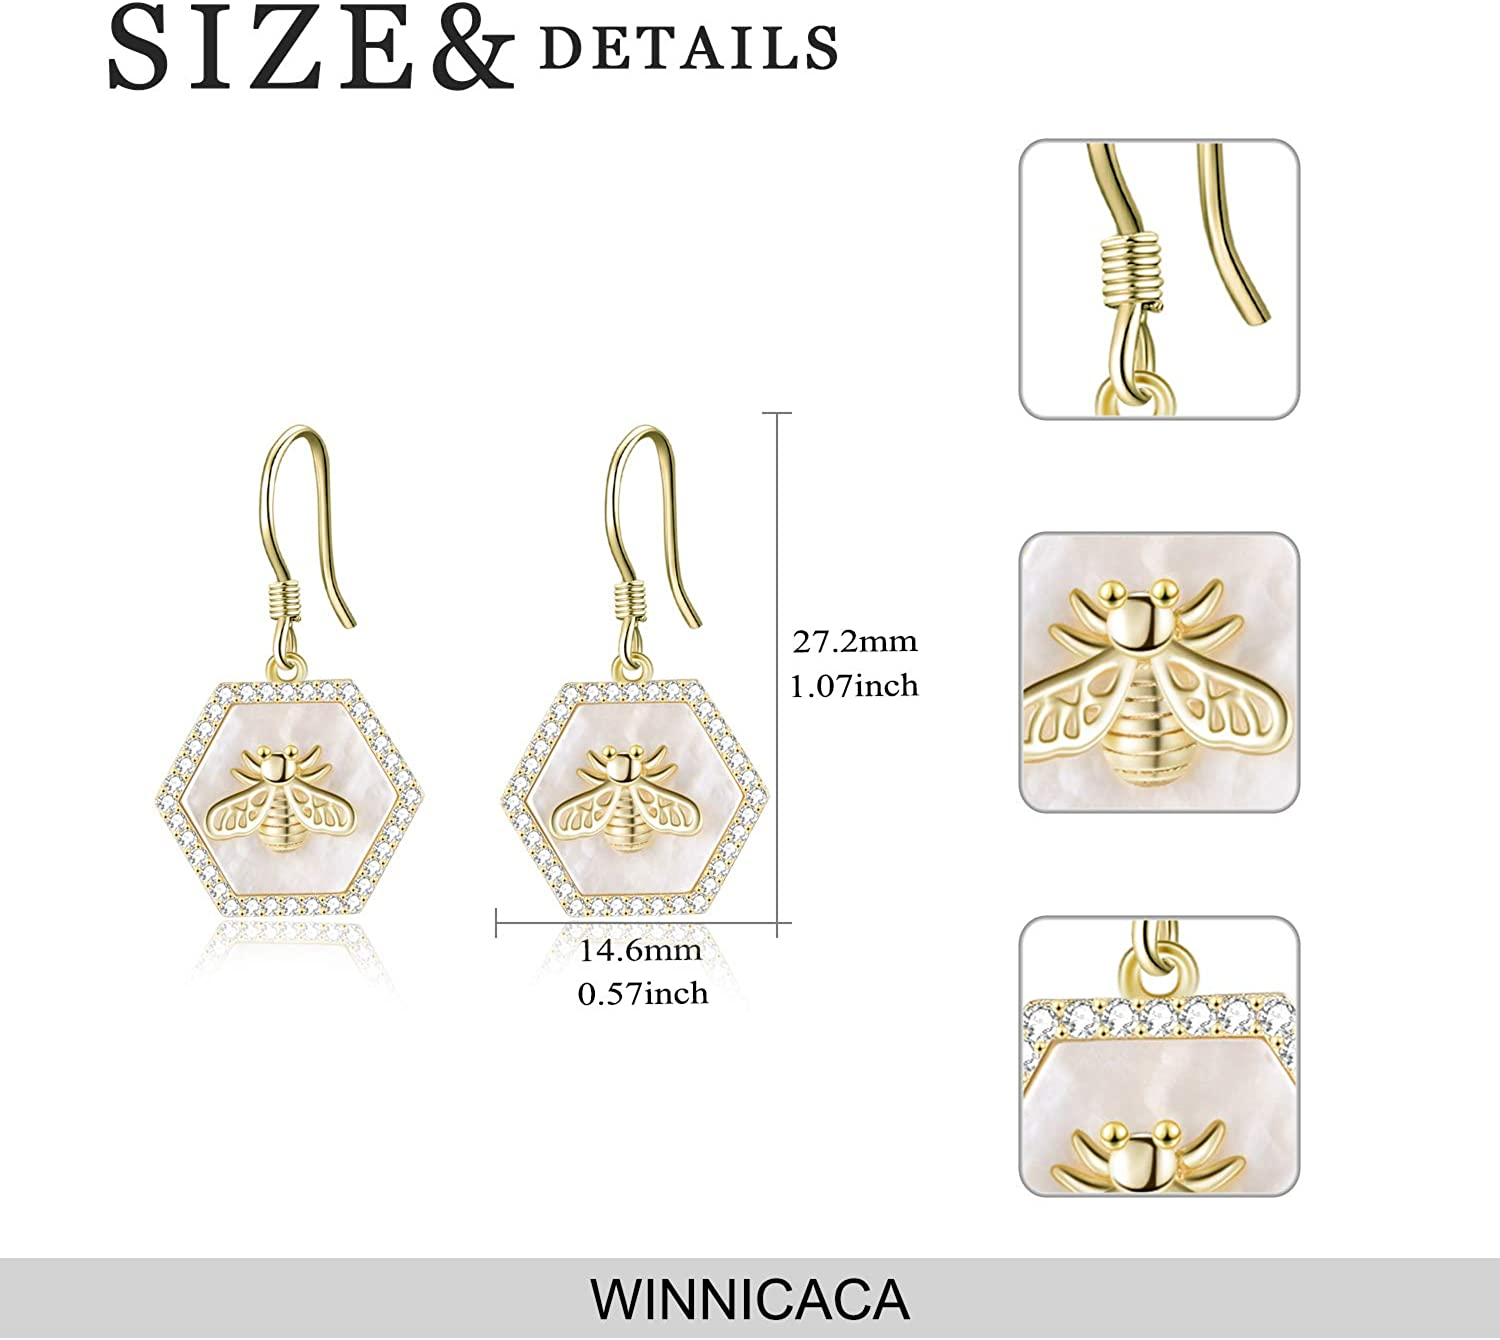 WINNICACA Bee Jewellery Sunflower Pendant S925 Sterling Silver Charms Choker Necklace for Women Gifts